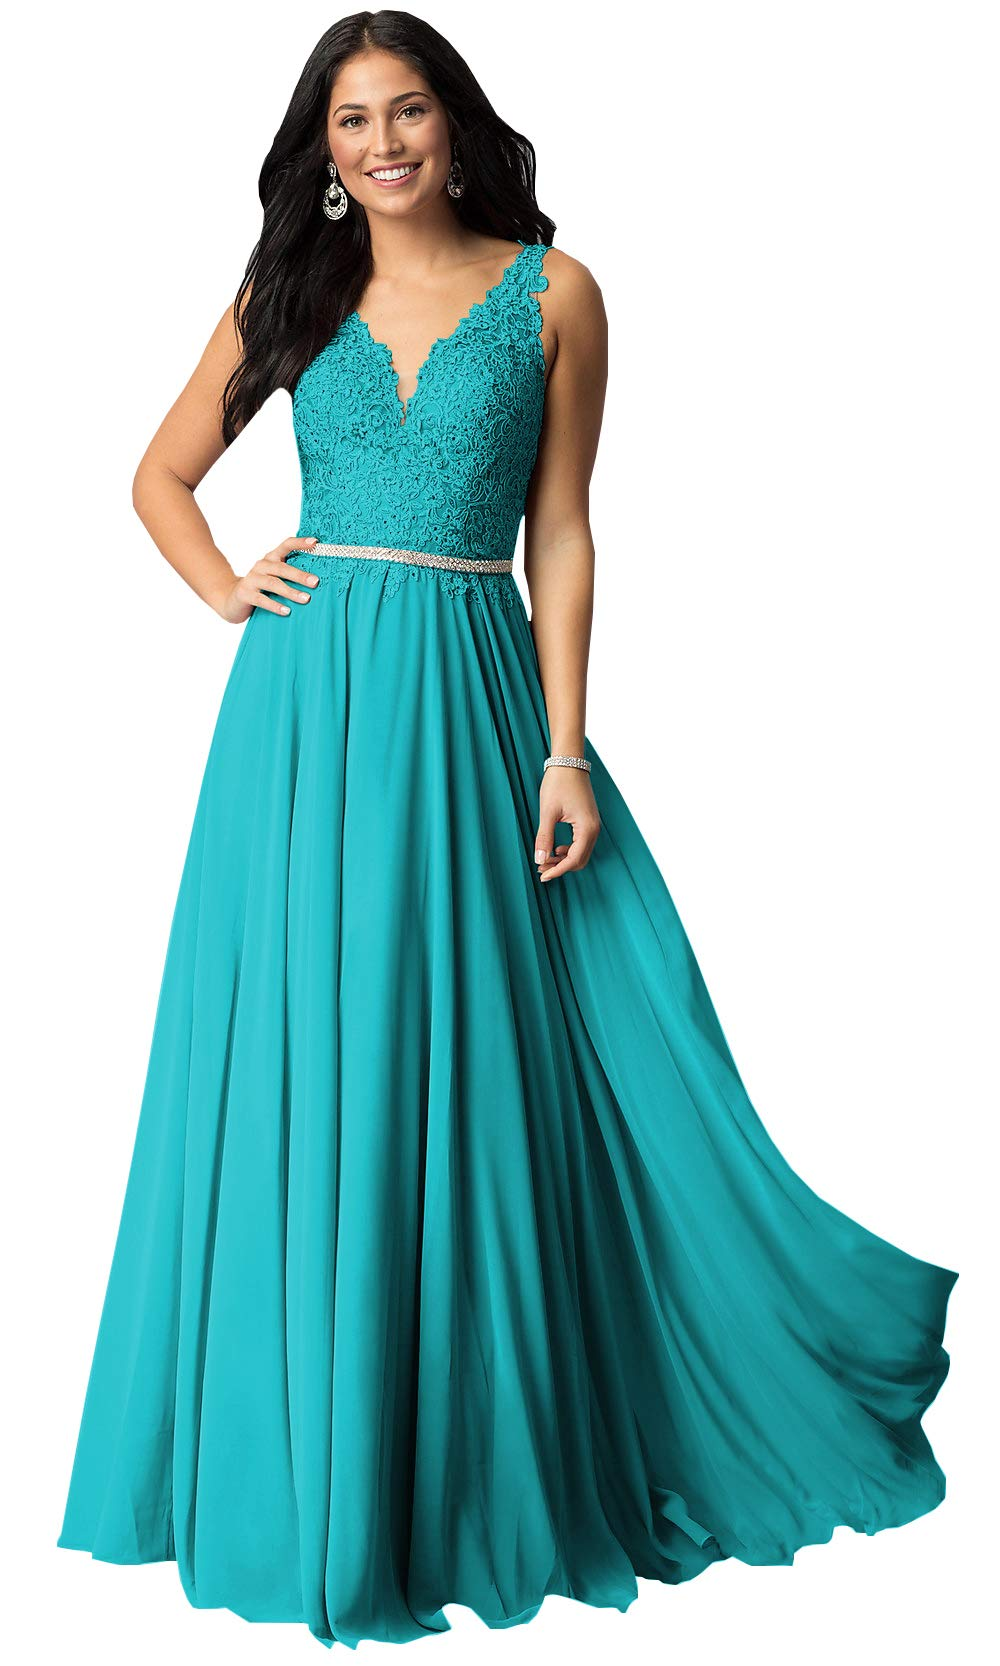 Now and Forever Plus Size A-Line Beaded Belt Bridesmaid Dresses Long for Women Formal Prom Gown (Aqua,18W)